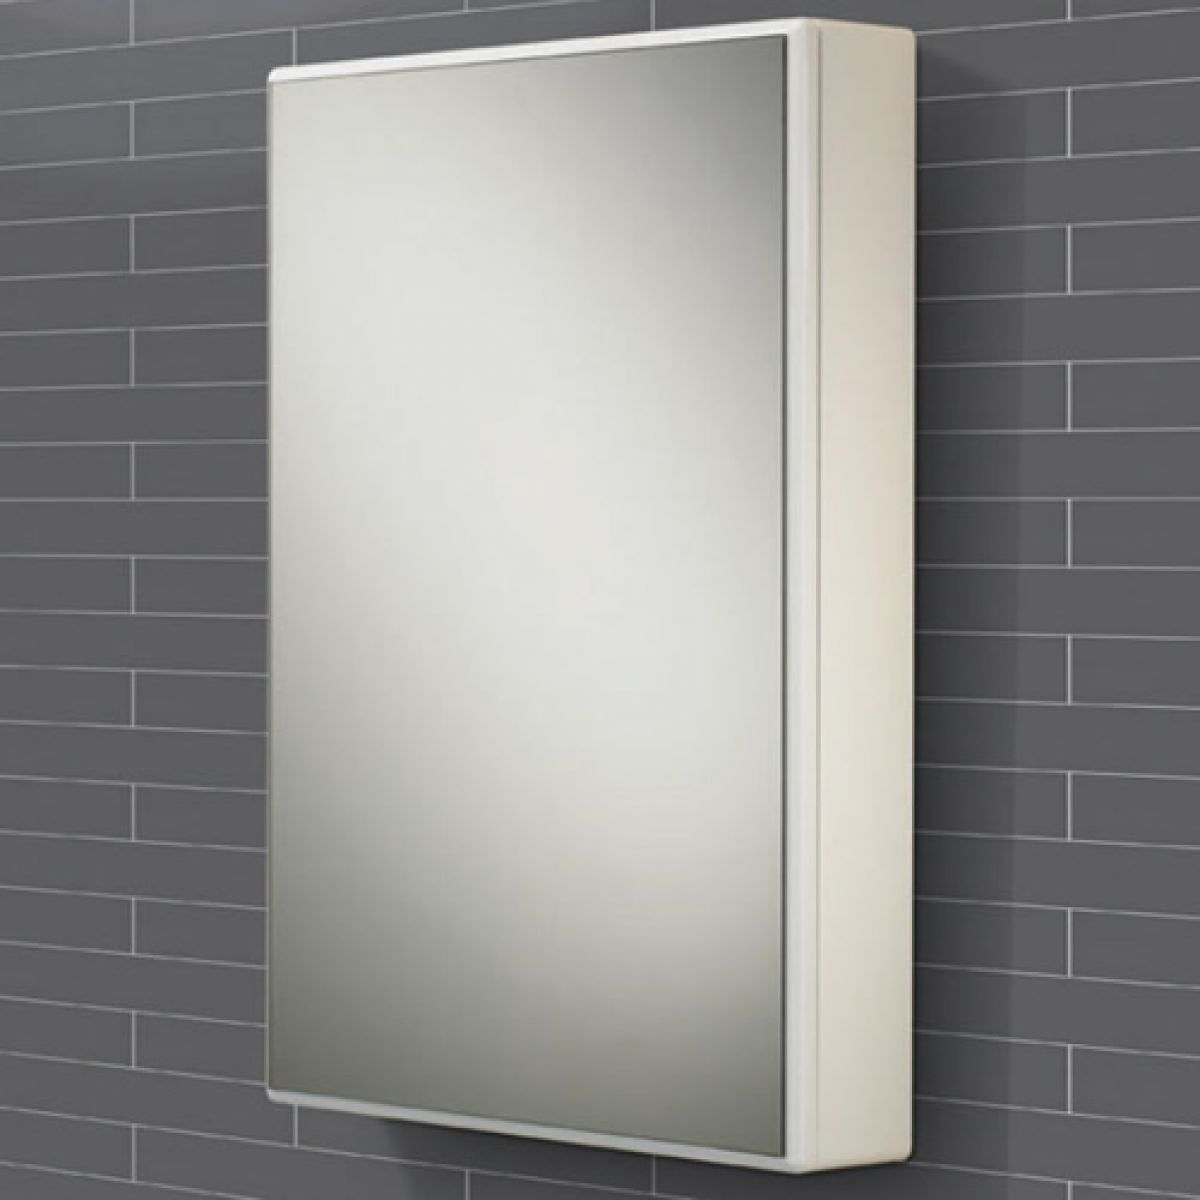 Mirrored Bathroom Cabinets Uk Hib Tulsa Mirrored Bathroom Cabinet Uk Bathrooms